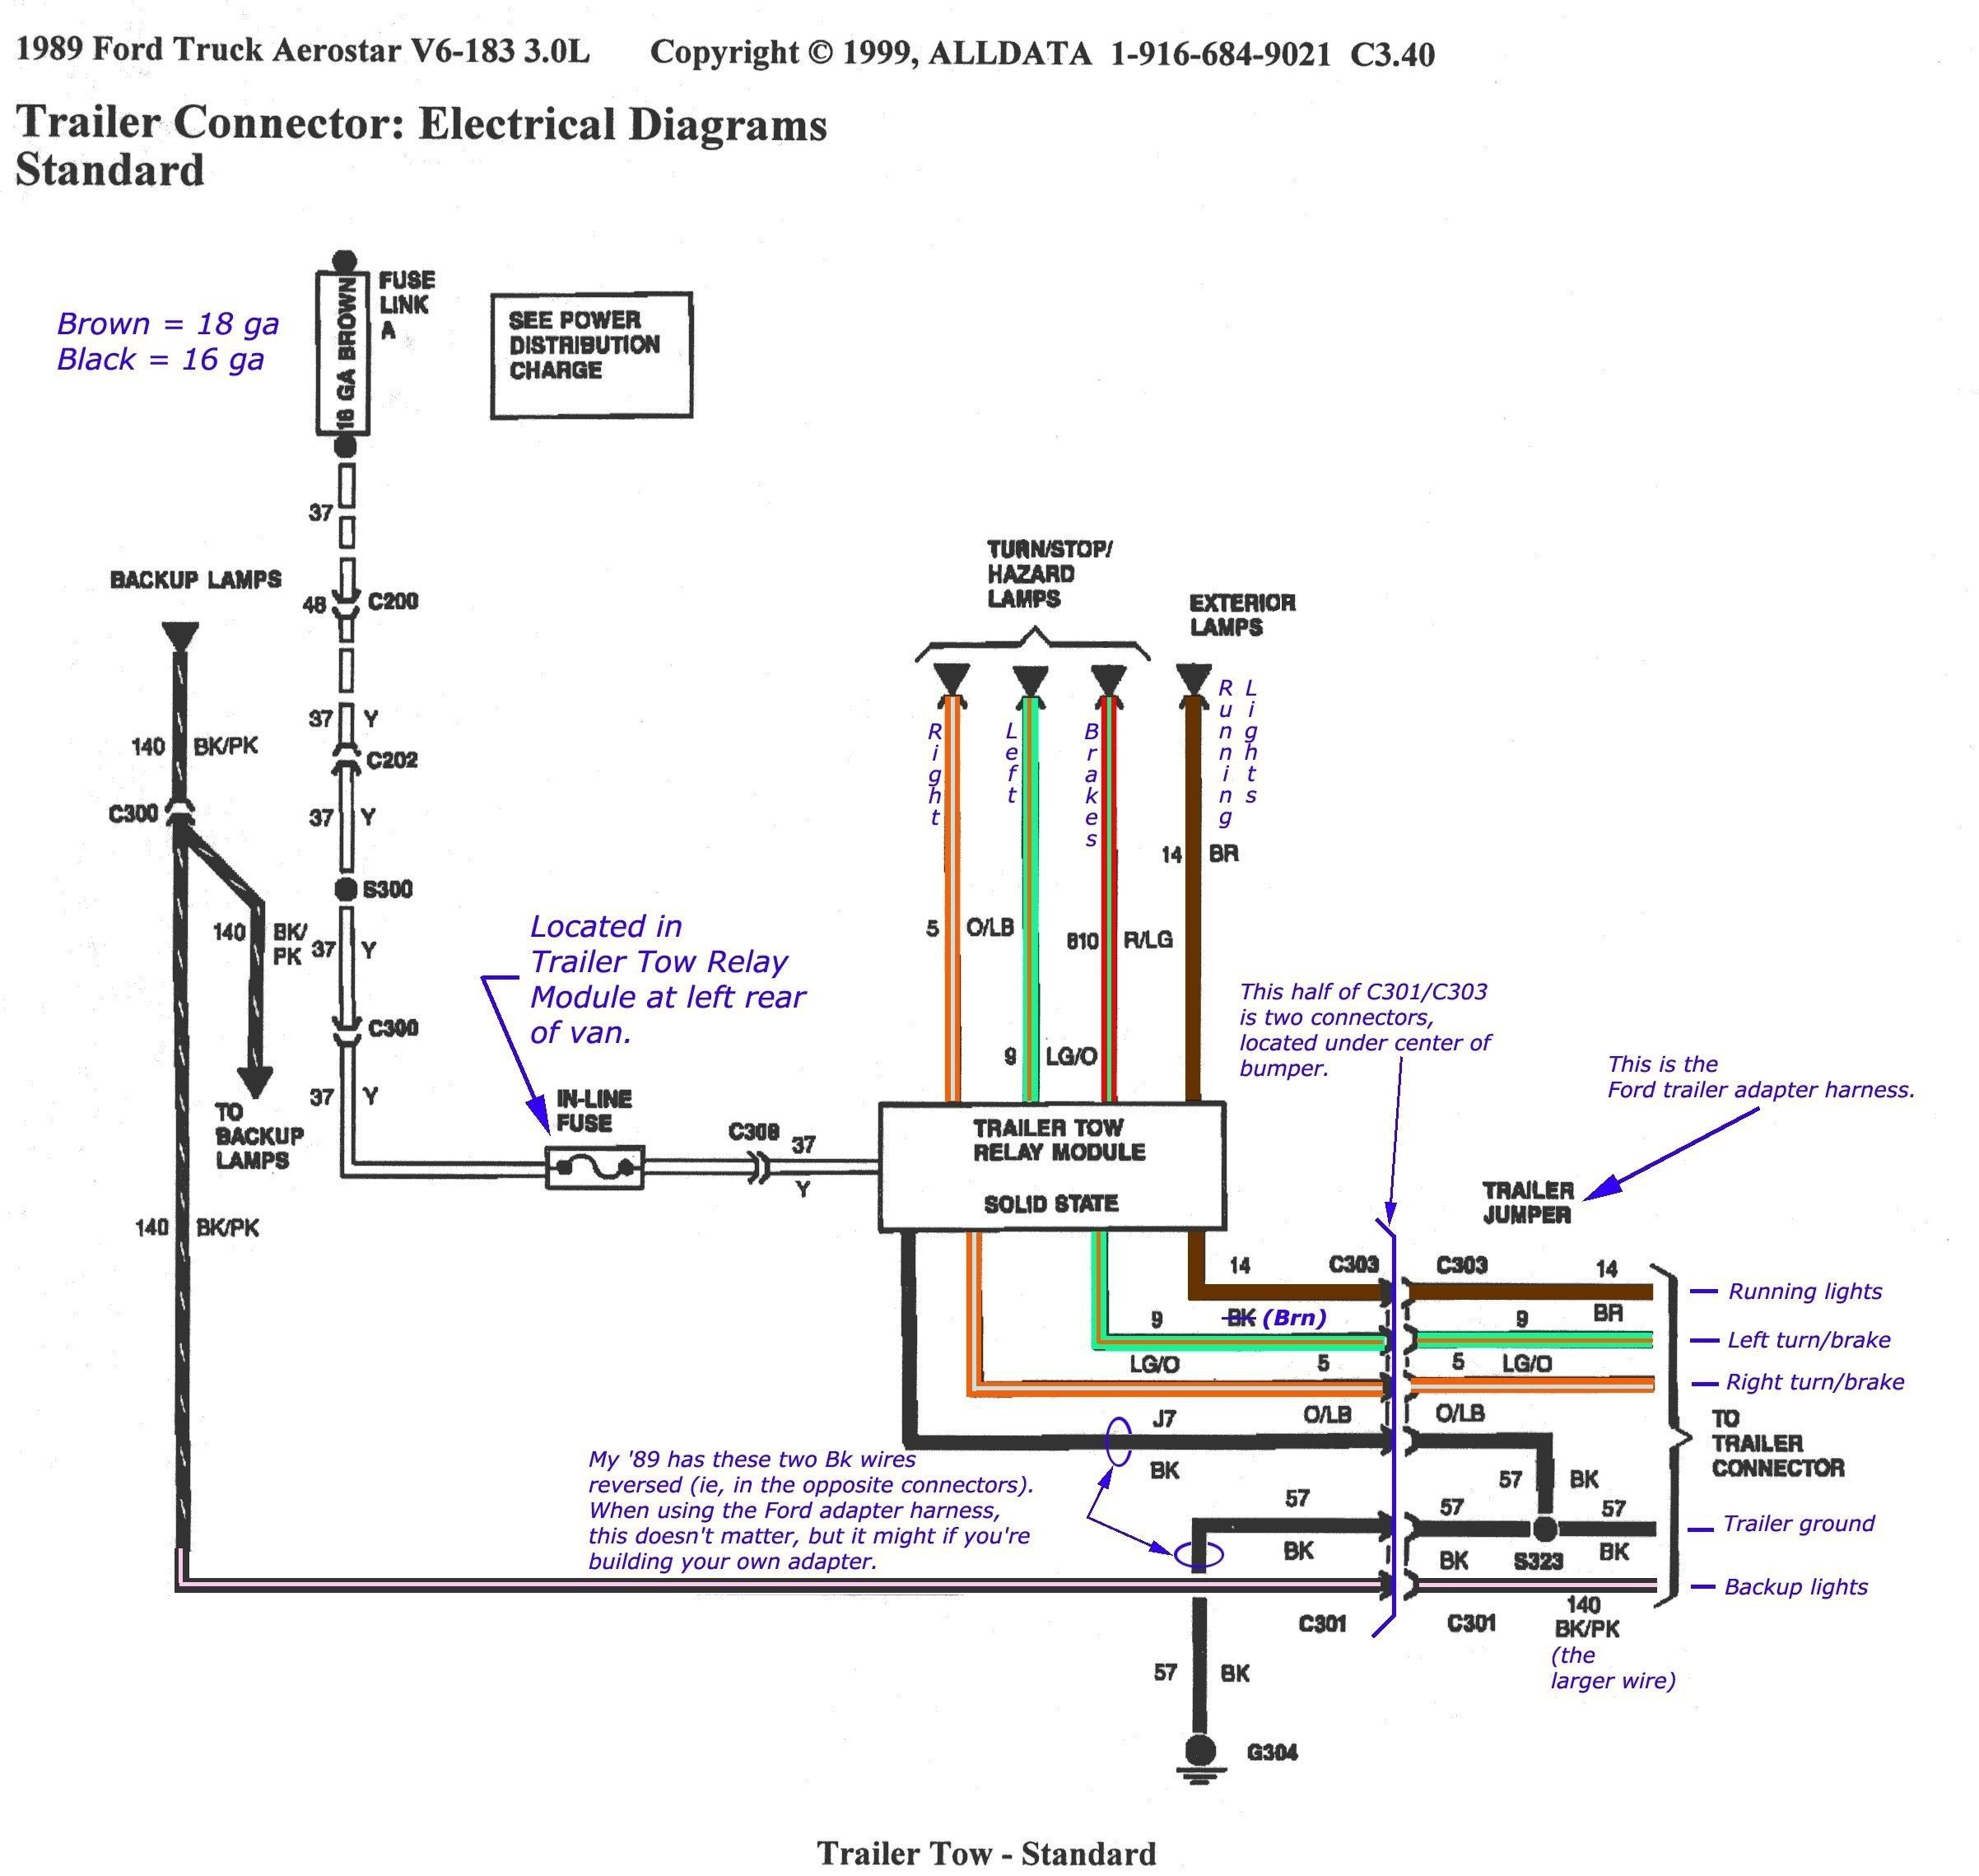 Tow Vehicle Wiring Diagram Valid Mazda 3 Tow Bar Wiring Diagram Regarding Tow Vehicle Wiring Diagram